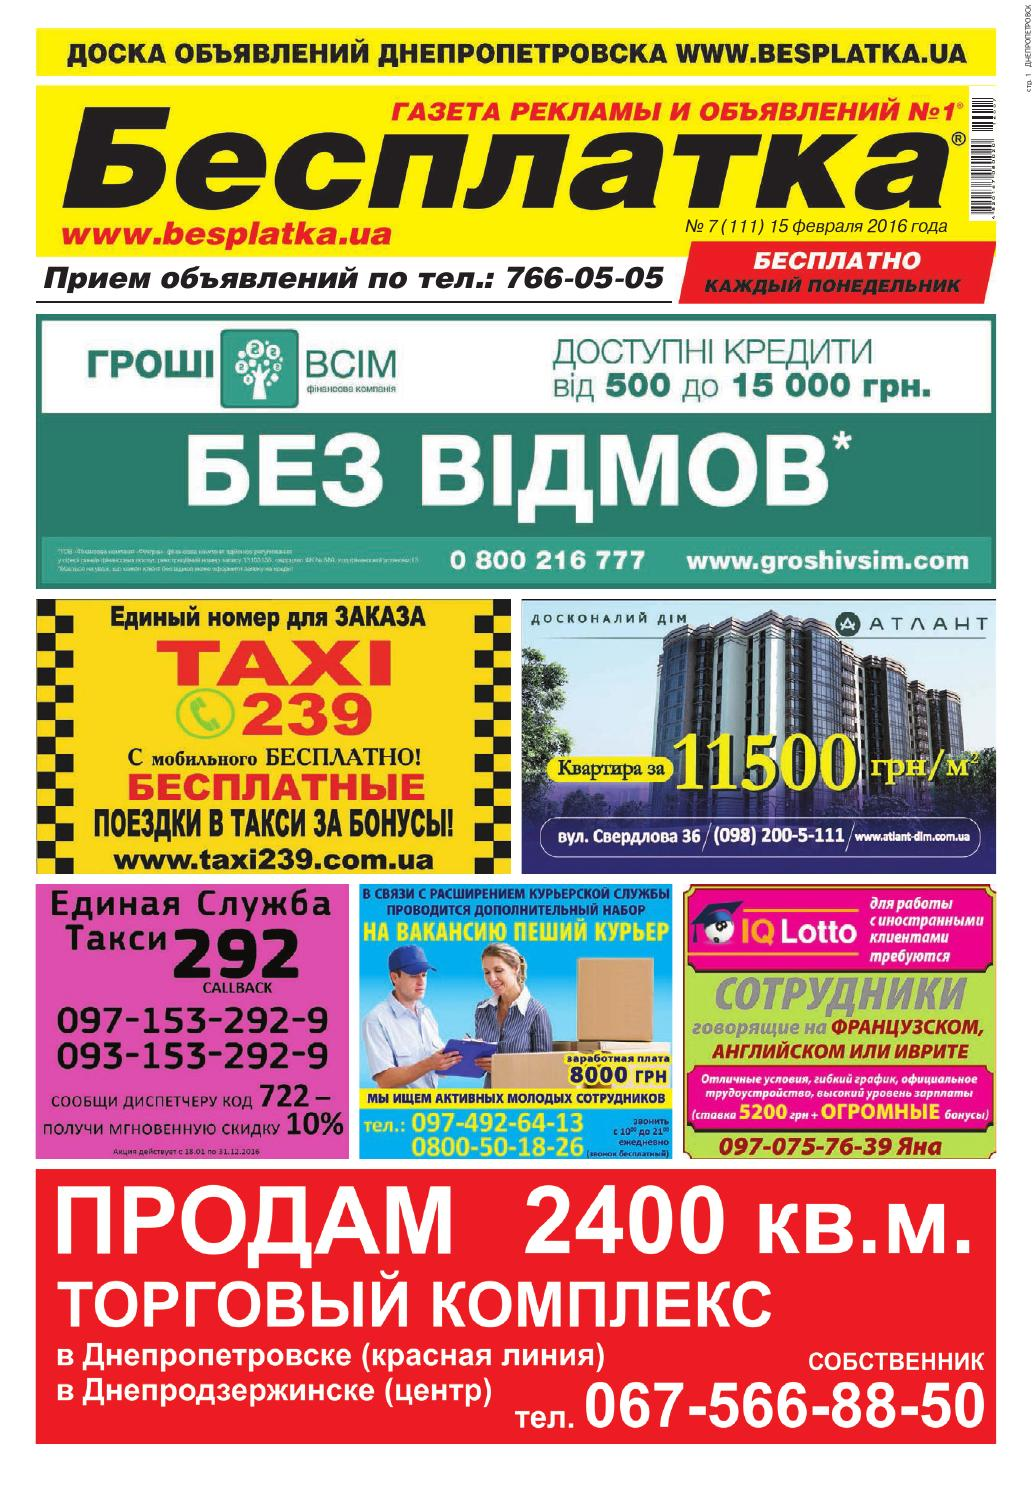 783b3d7e831d Besplatka #07 Днепропетровск by besplatka ukraine - issuu